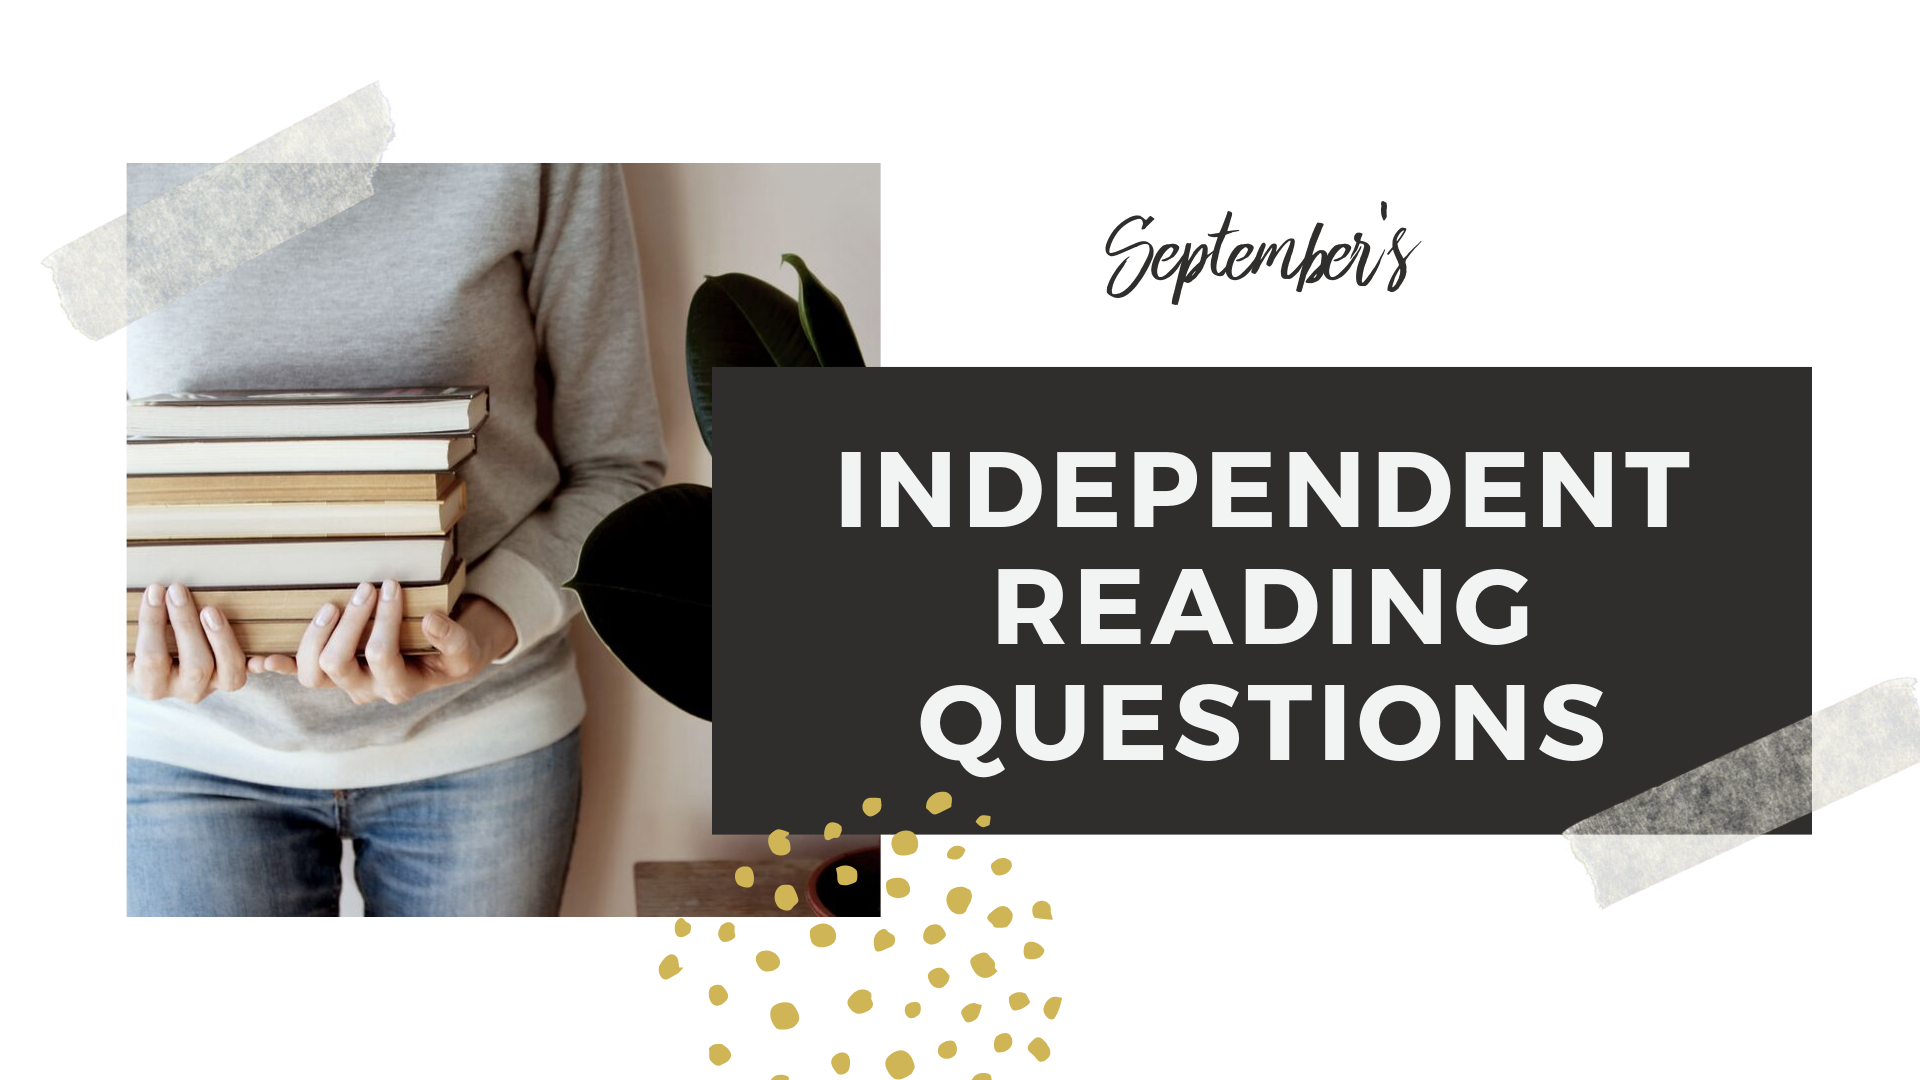 Bi-Monthly questions - On the 1st & 3rd Fridays of the month, we gather in small book groups to discuss novels. Our questions look similar to this every month.